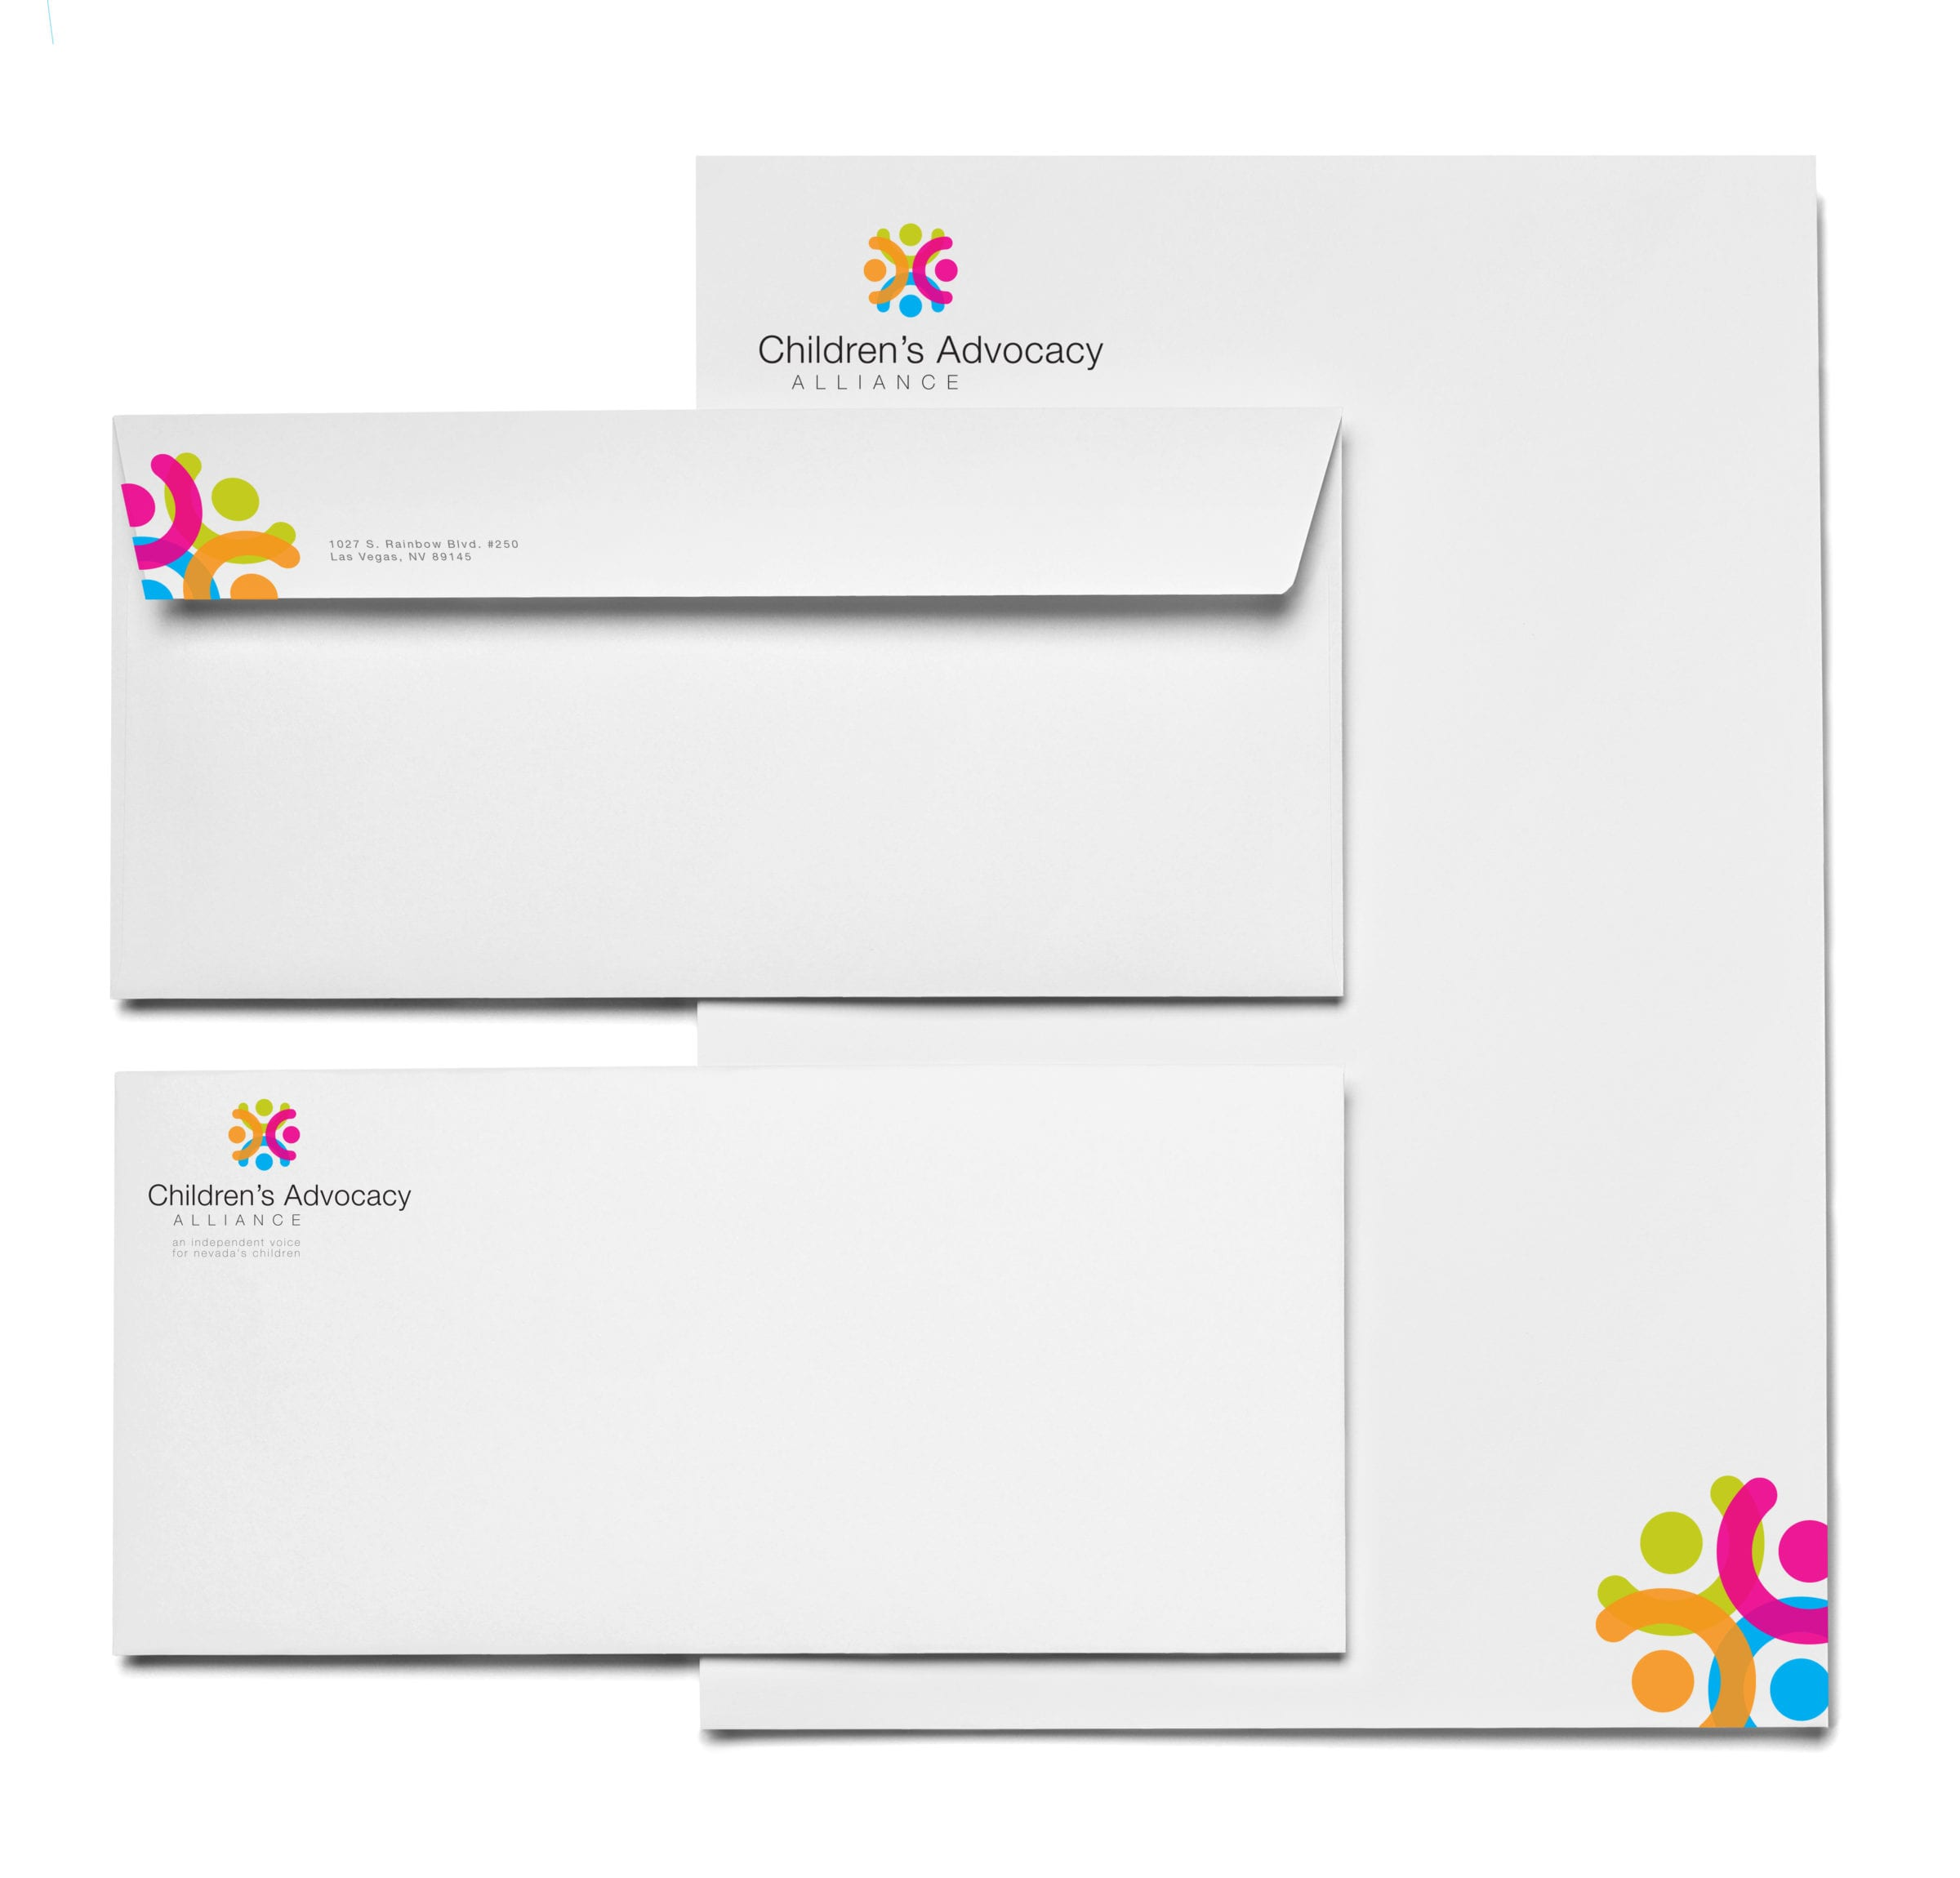 Children's Advocacy Alliance branded stationary